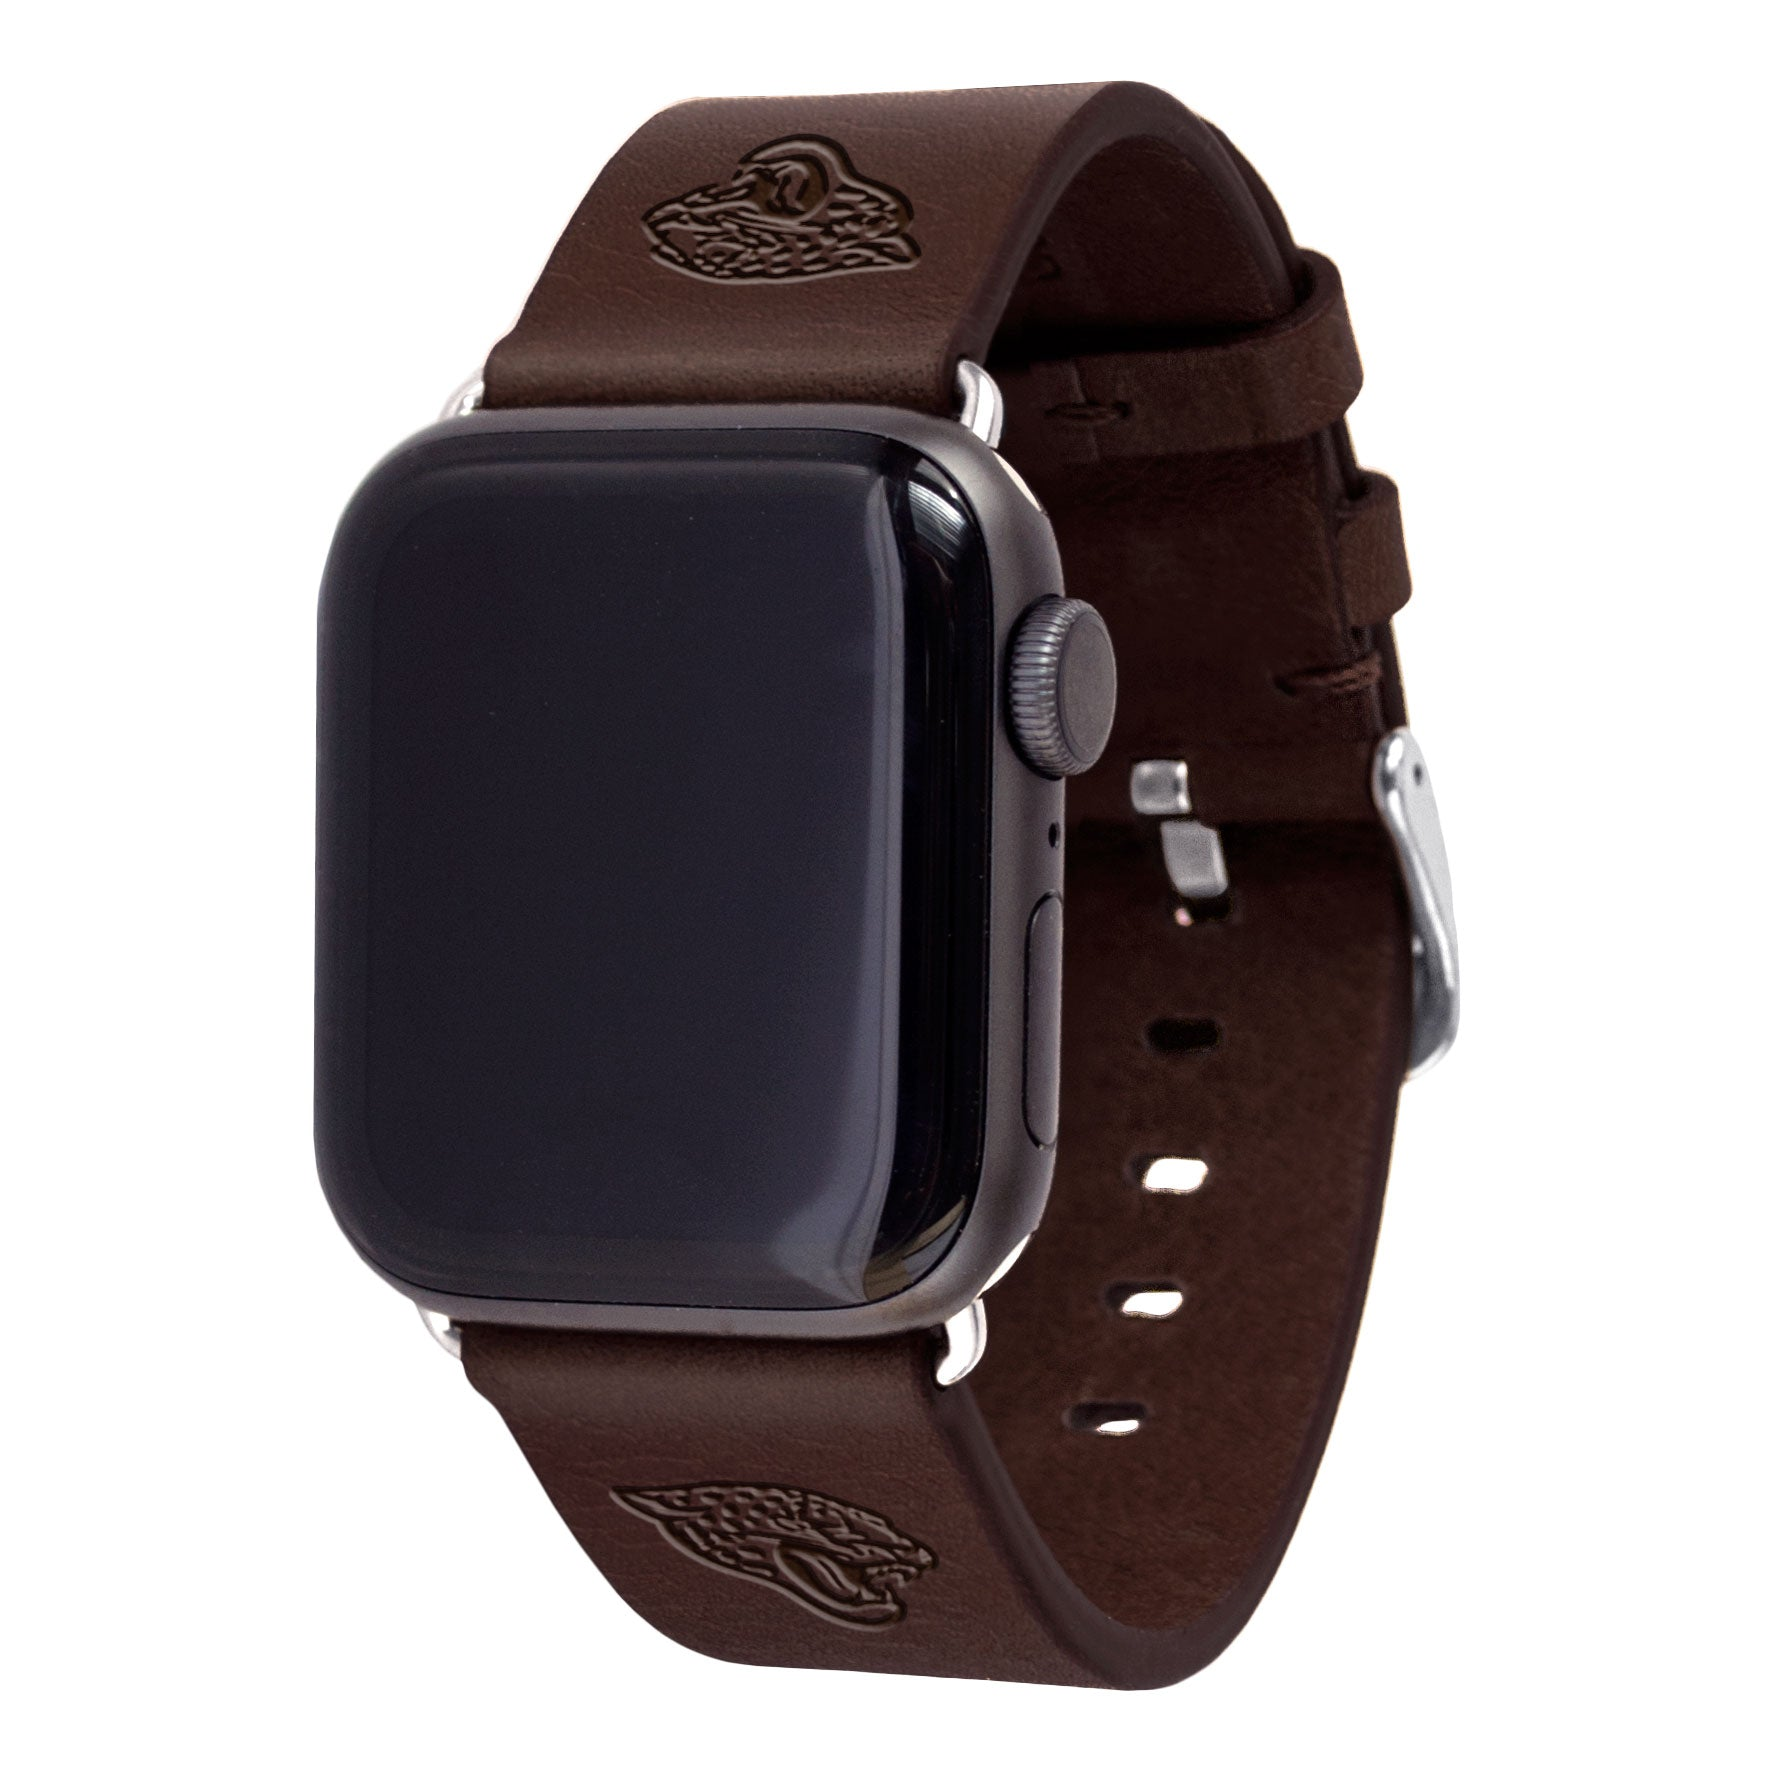 Jacksonville Jaguars Leather Apple Watch Band - AffinityBands